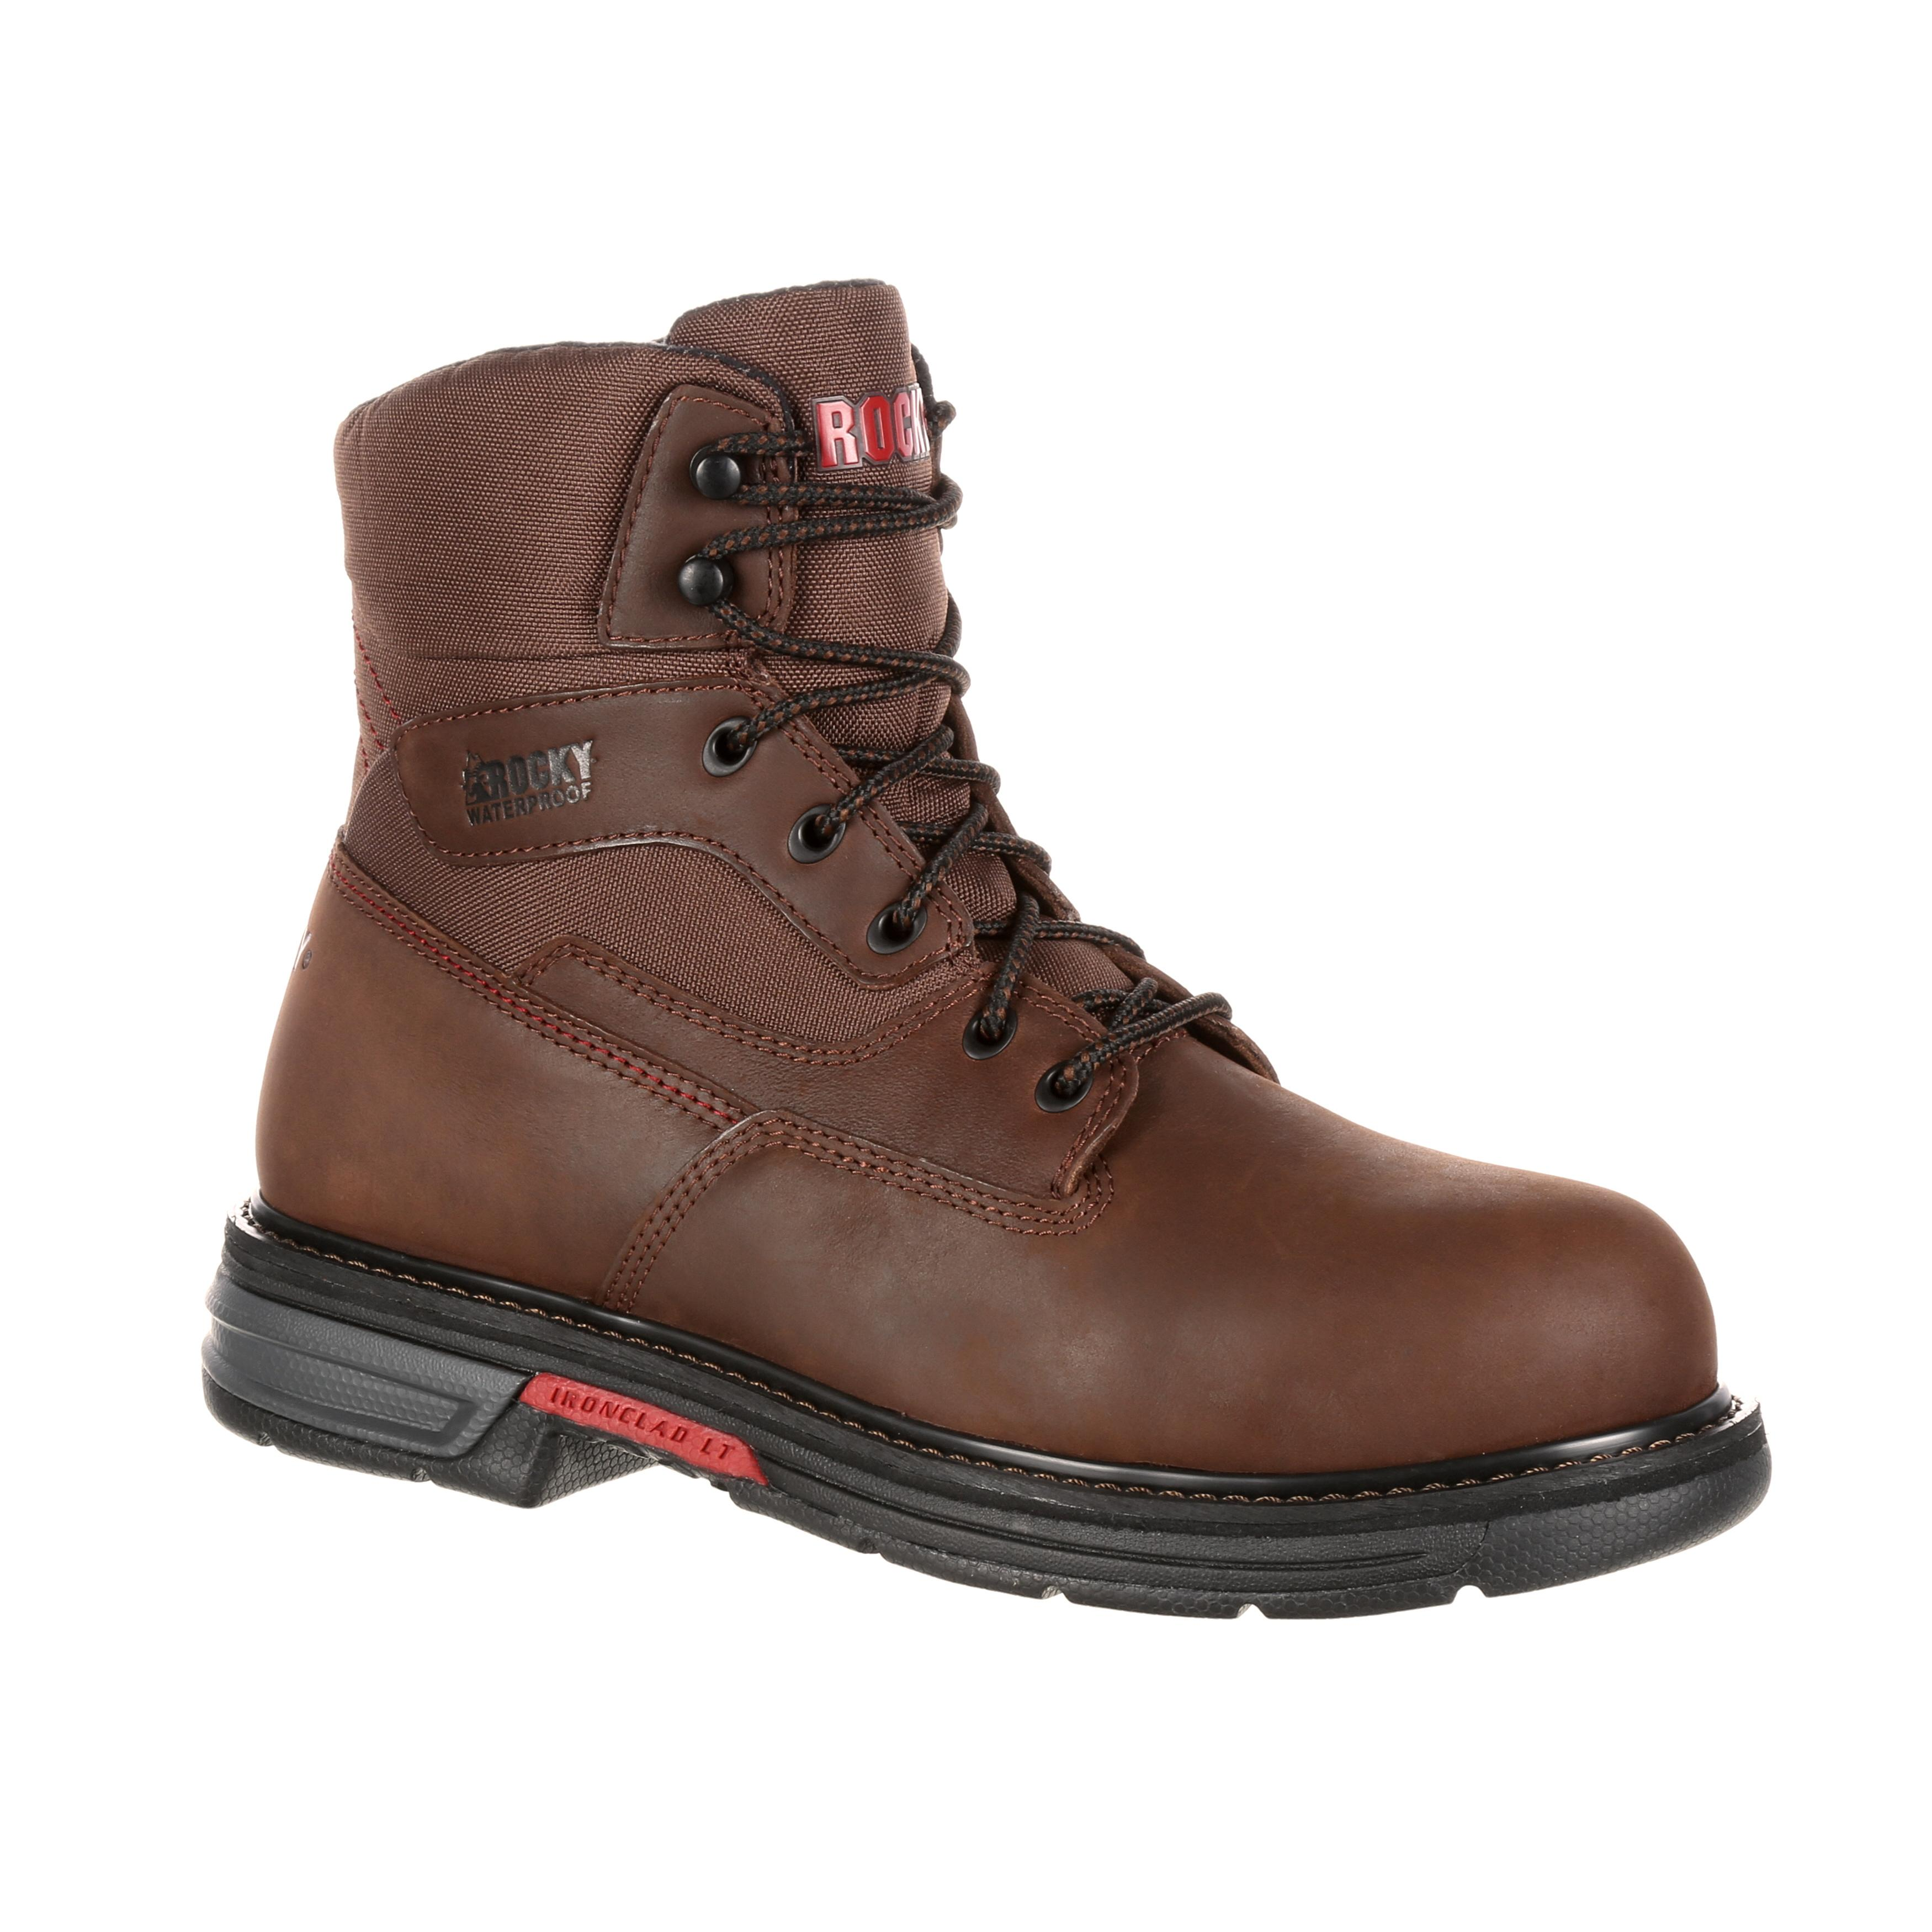 s lightweight waterproof work boots rocky ironclad lt